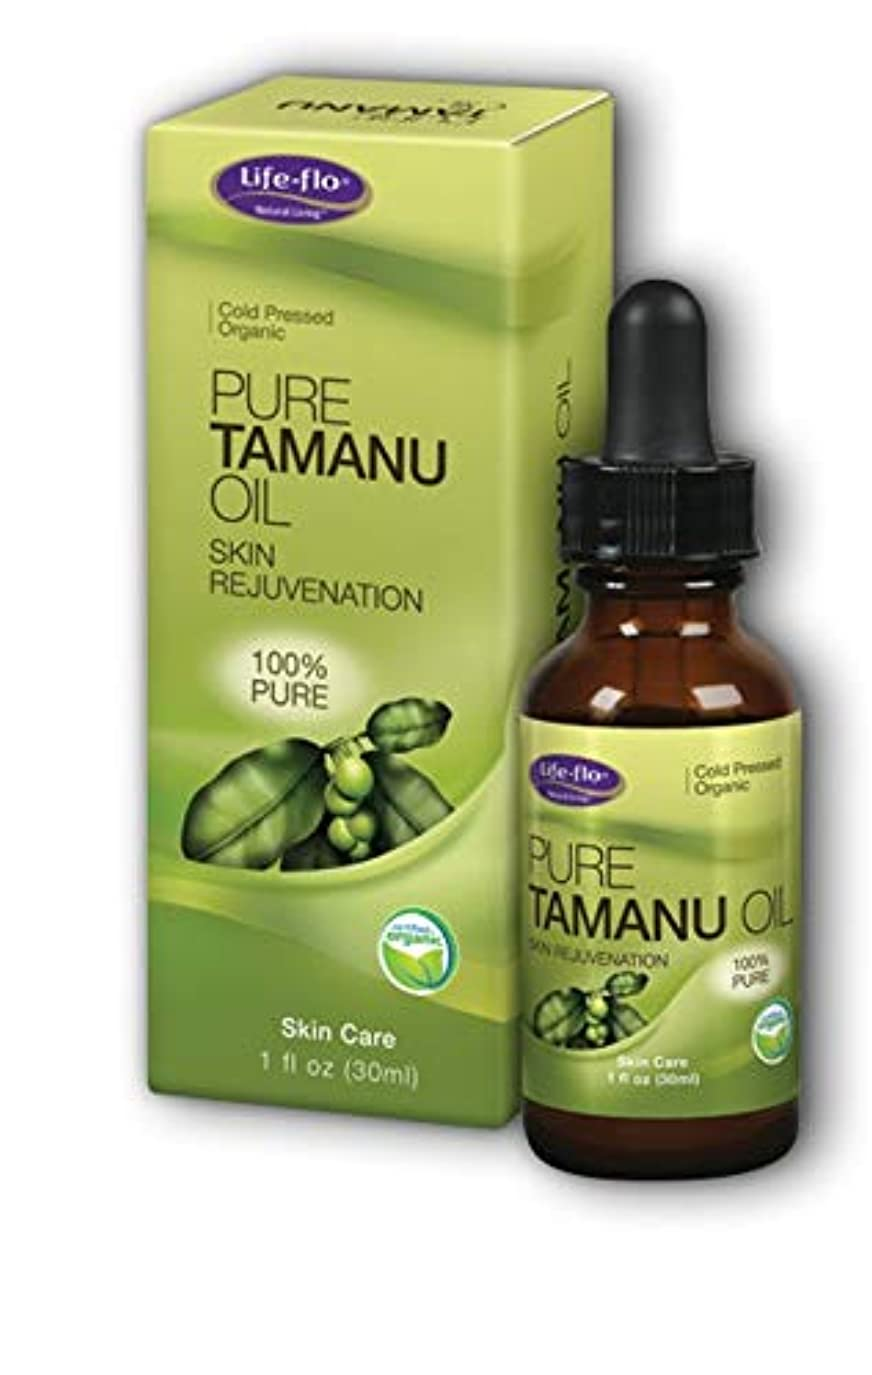 Life Flo Health - Pure Tamanu Oil 28g - ピュア?タマヌオイル 海外直送品